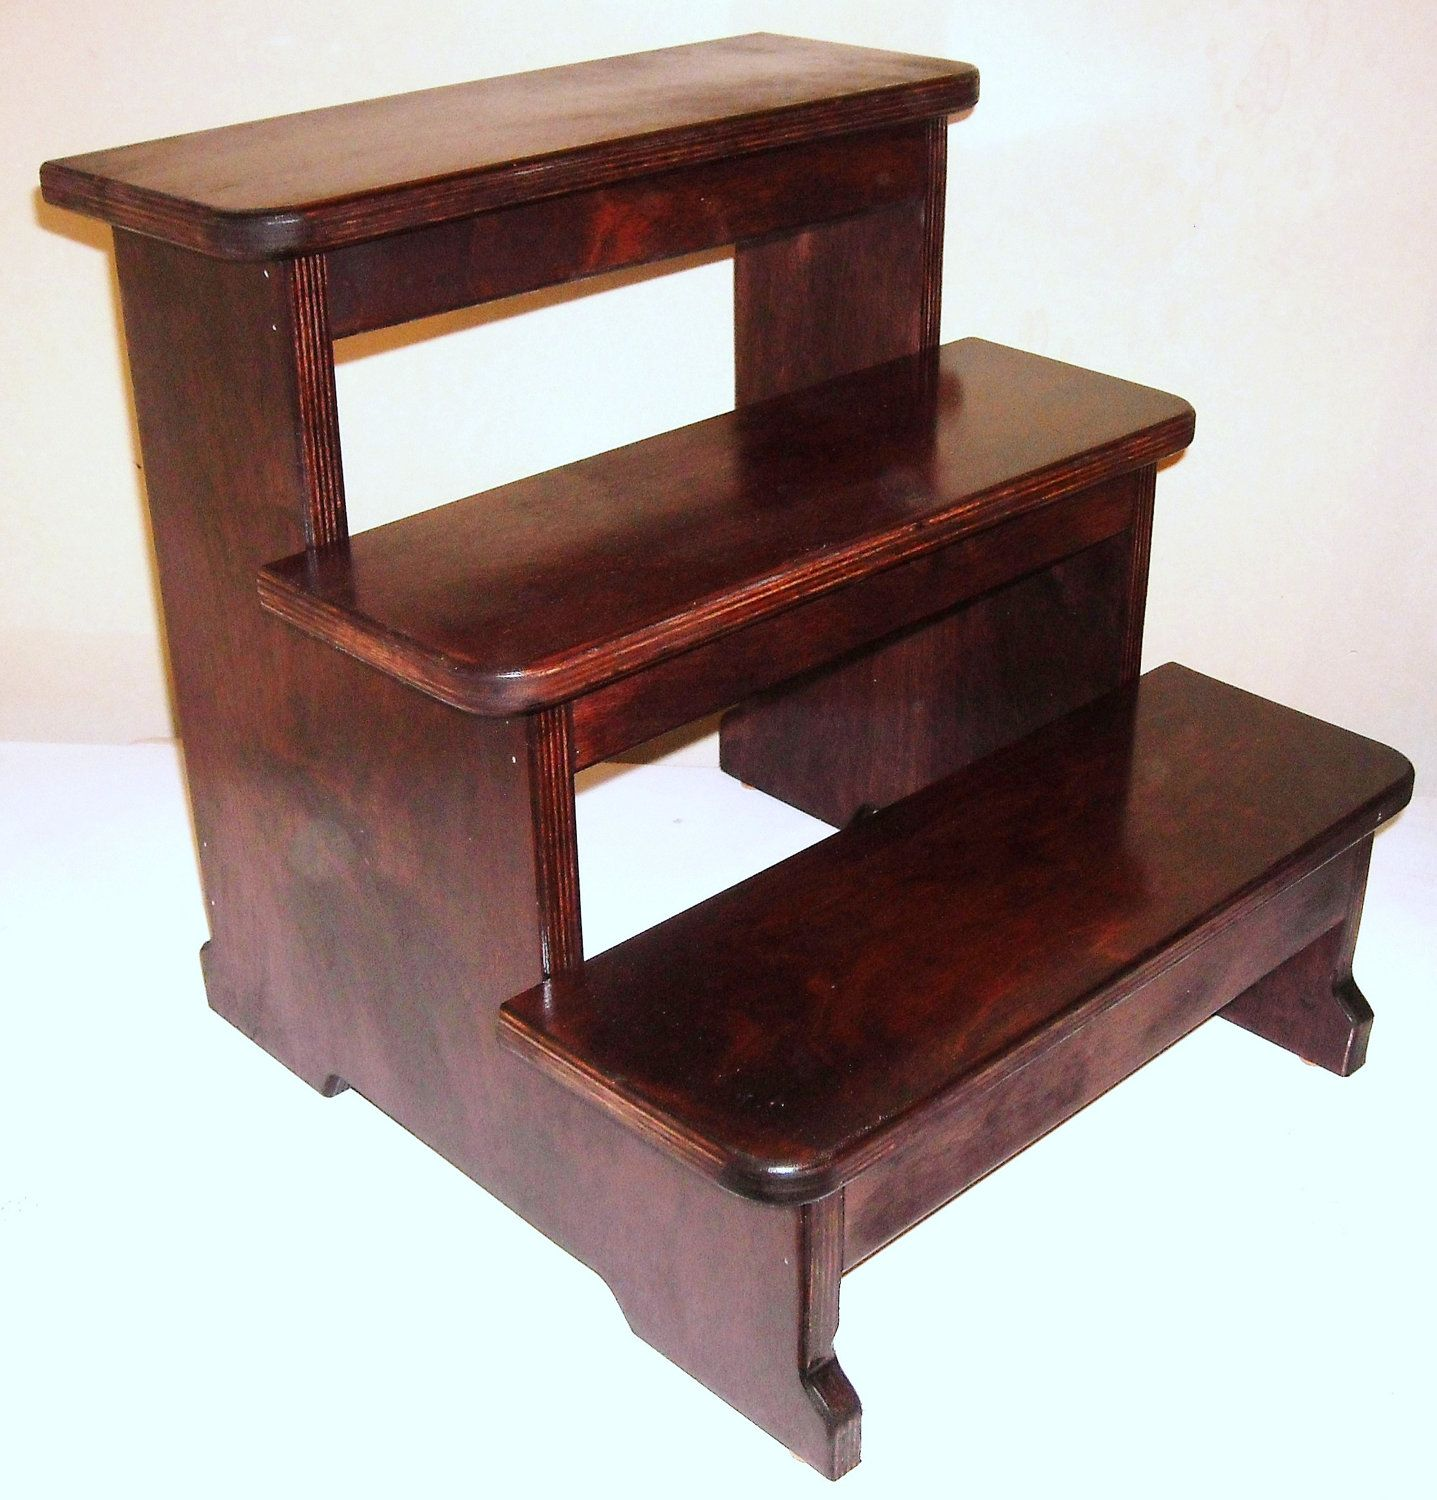 XXLG -Wood 3 Step Stool - Dark Cherry & XXLG -Wood 3 Step Stool - Dark Cherry | Cherries Wood steps and ... islam-shia.org